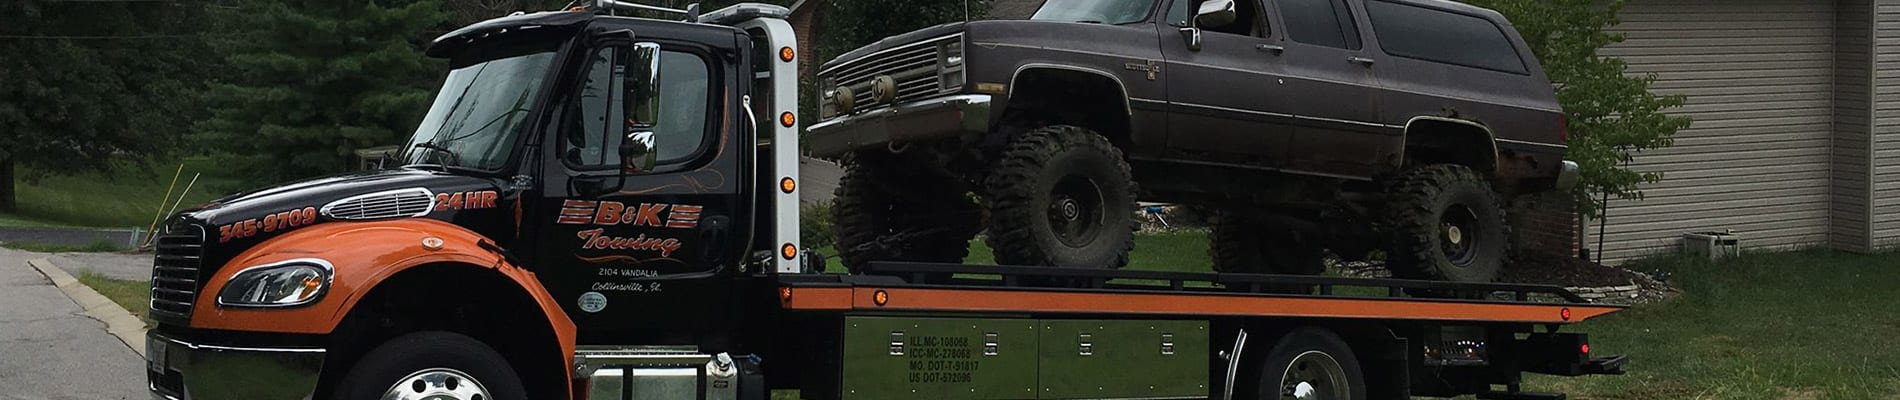 towing service troy illinois